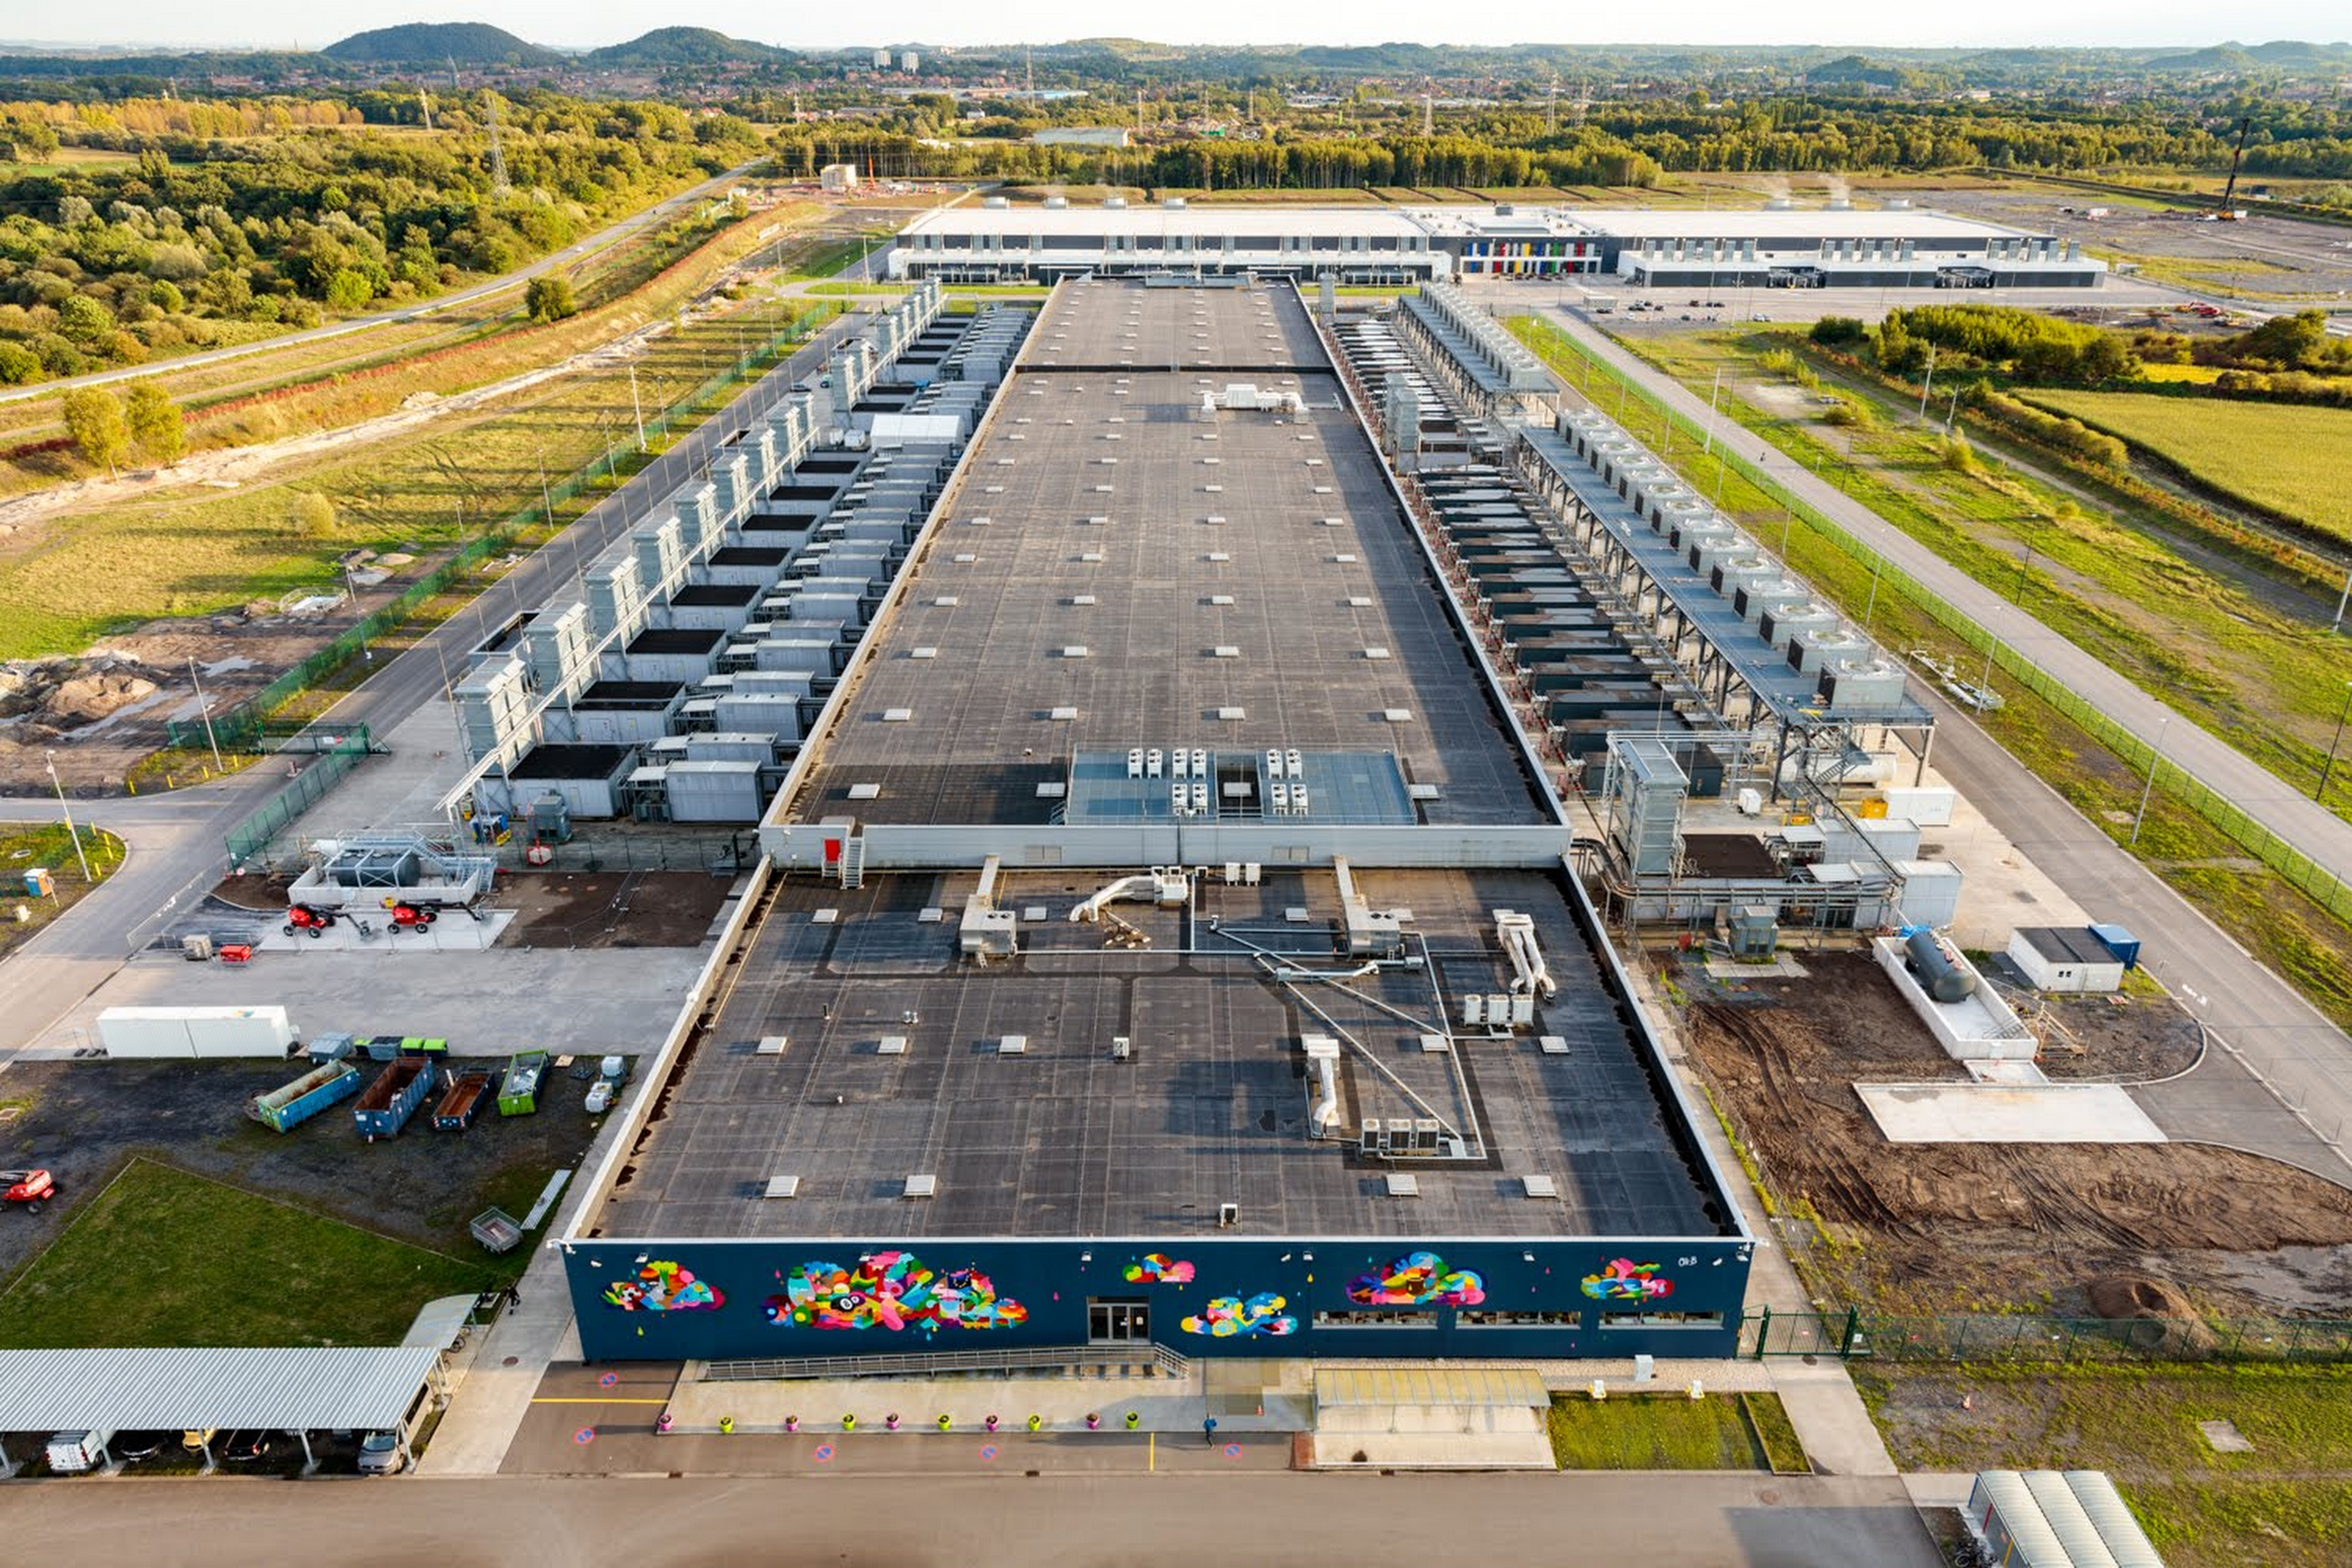 St Ghislain data center